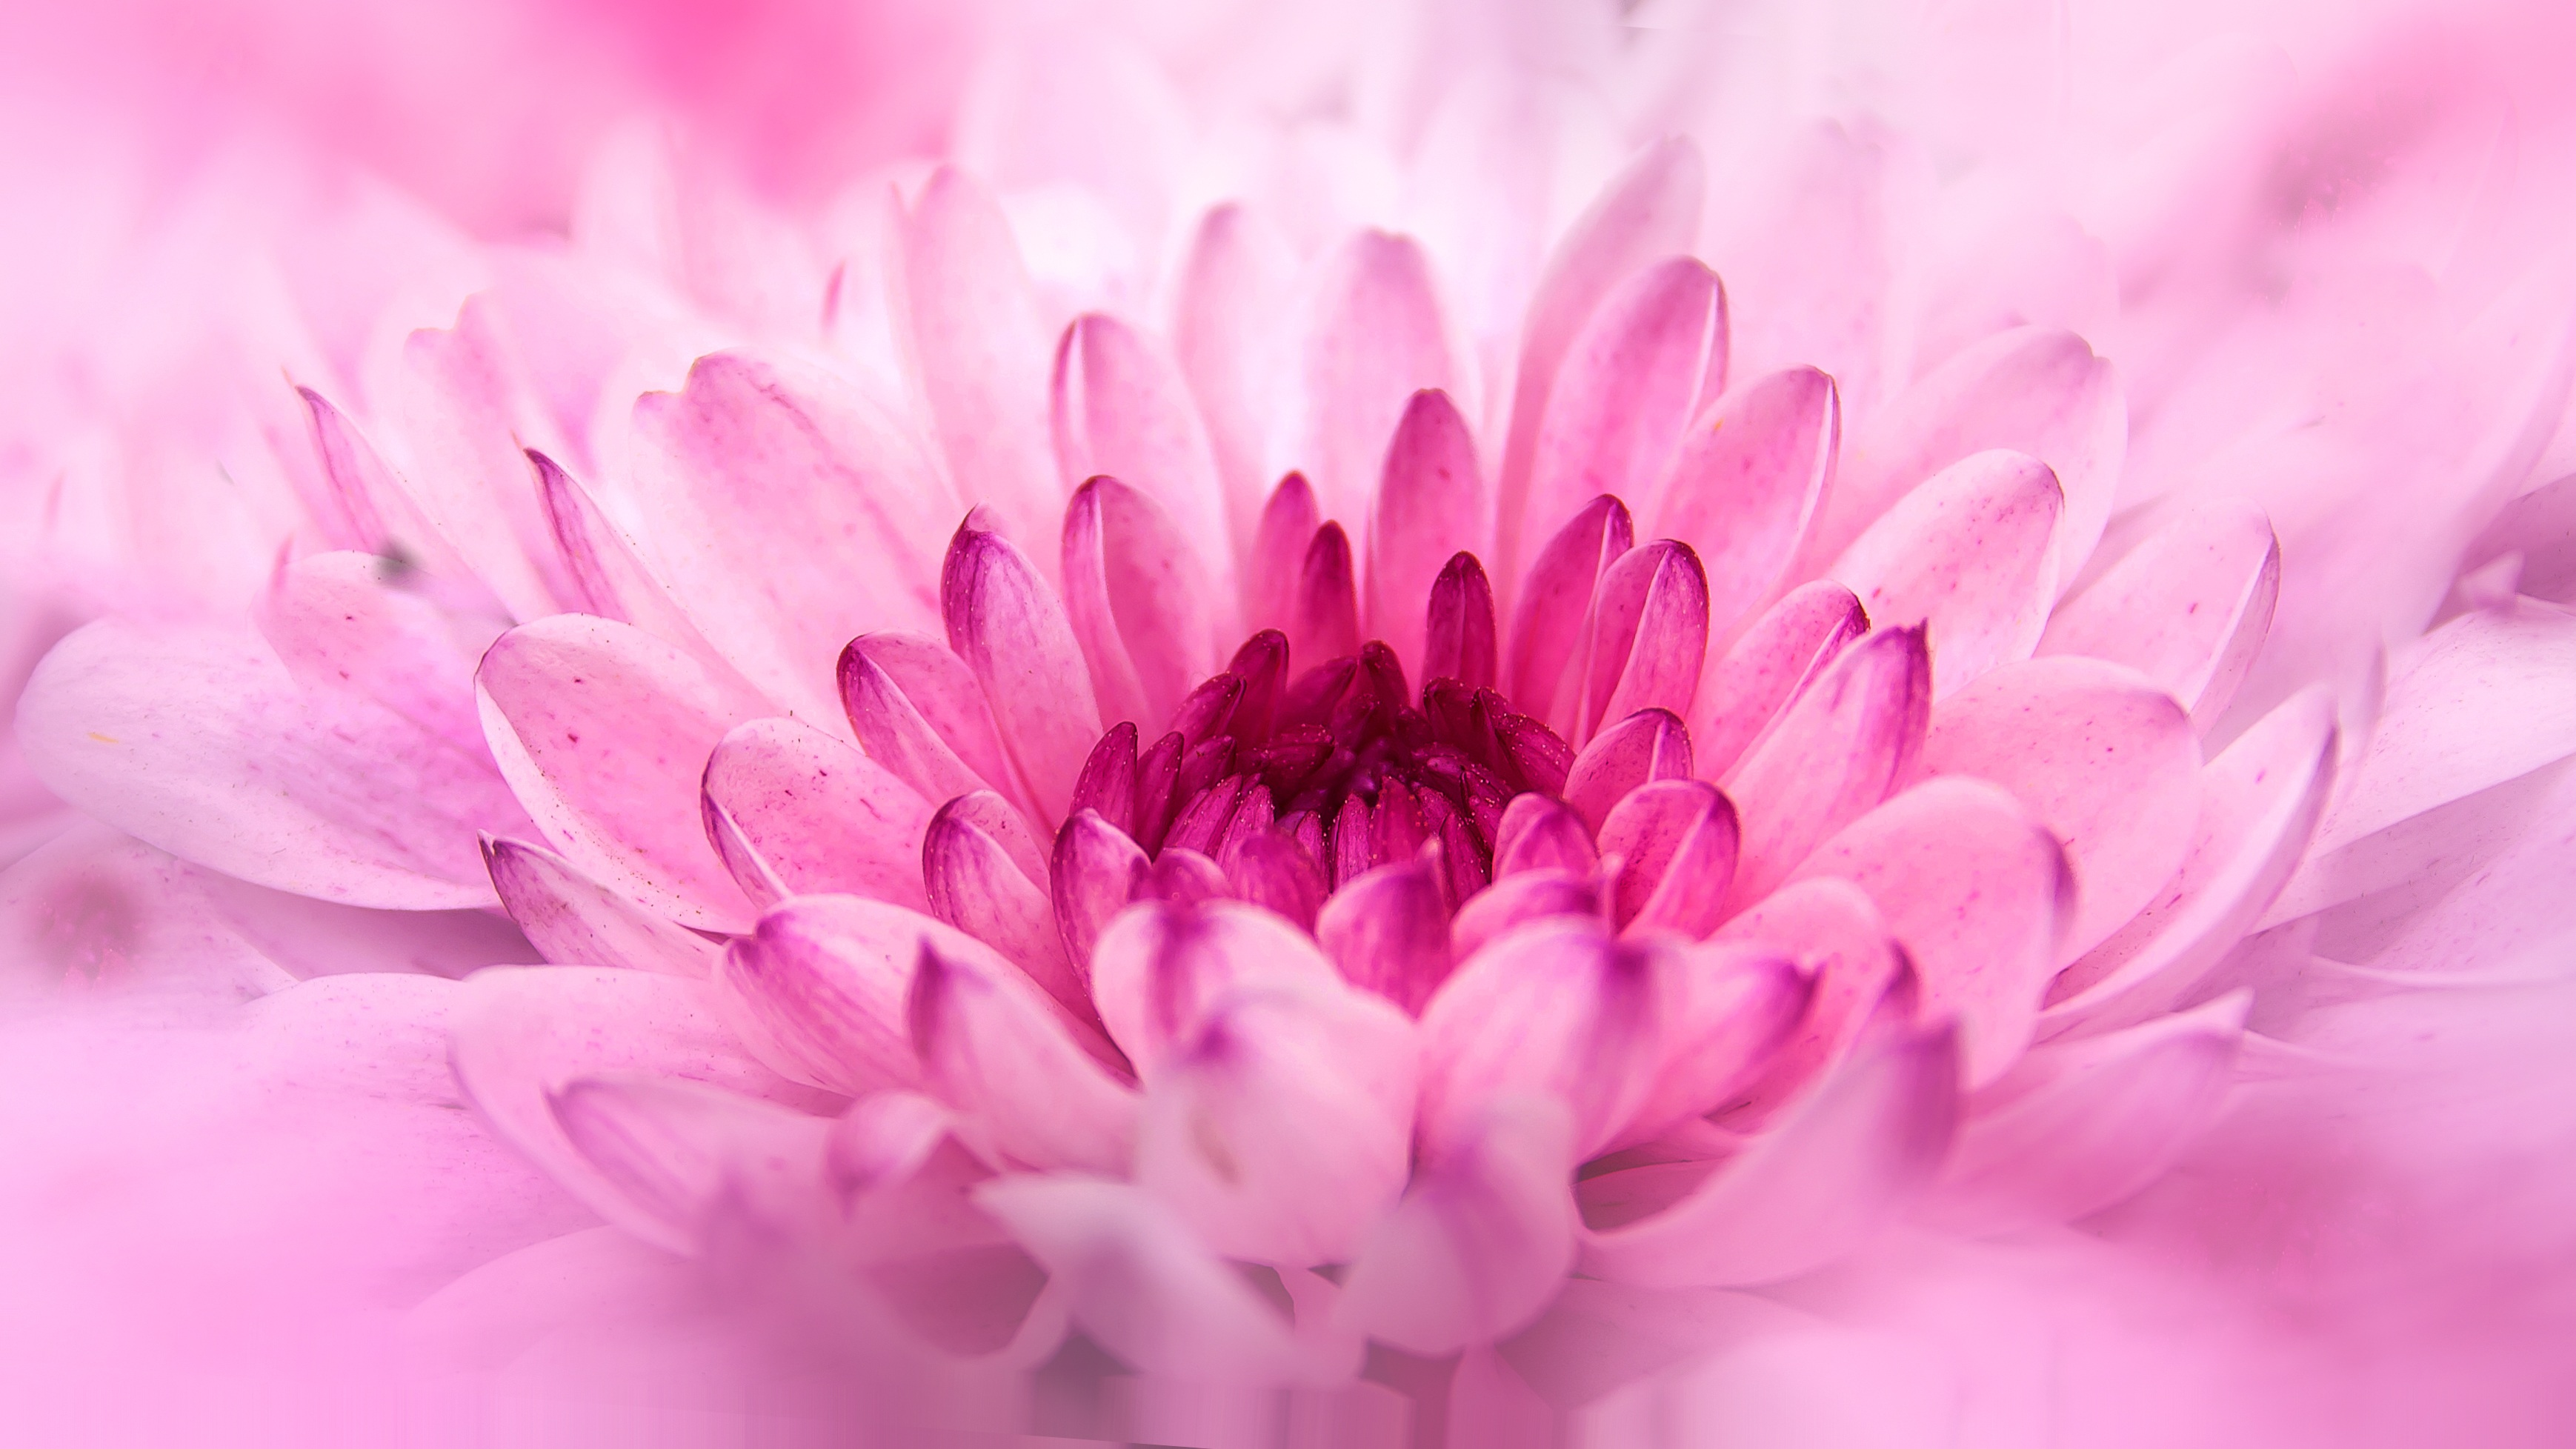 chrysanthemum, crisantemo